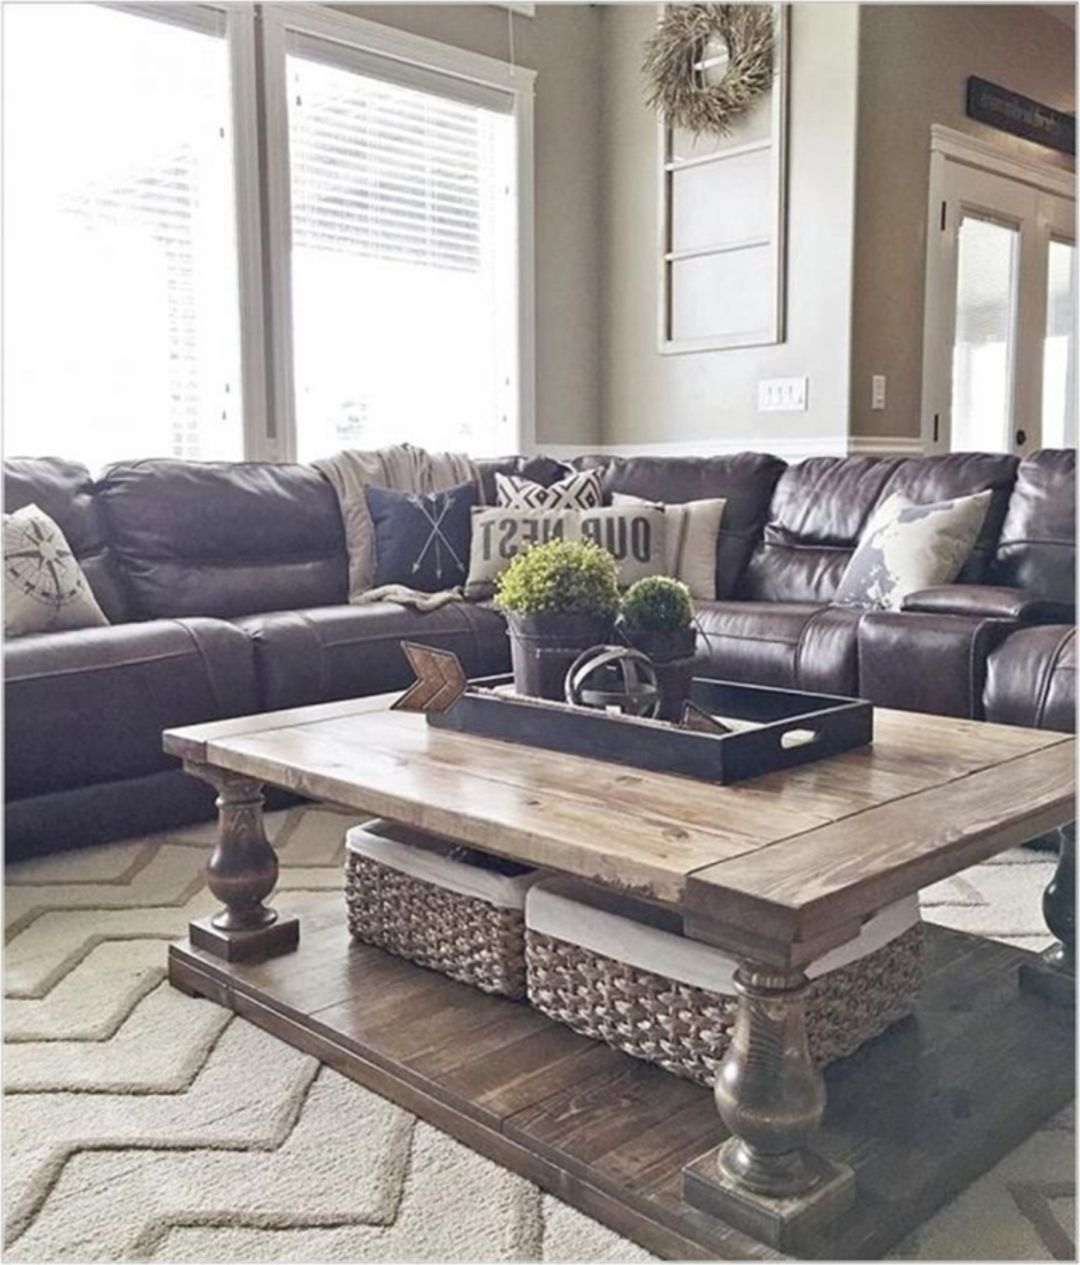 25 Great Farmhouse Coffee Table Design And Decor Ideas Brown